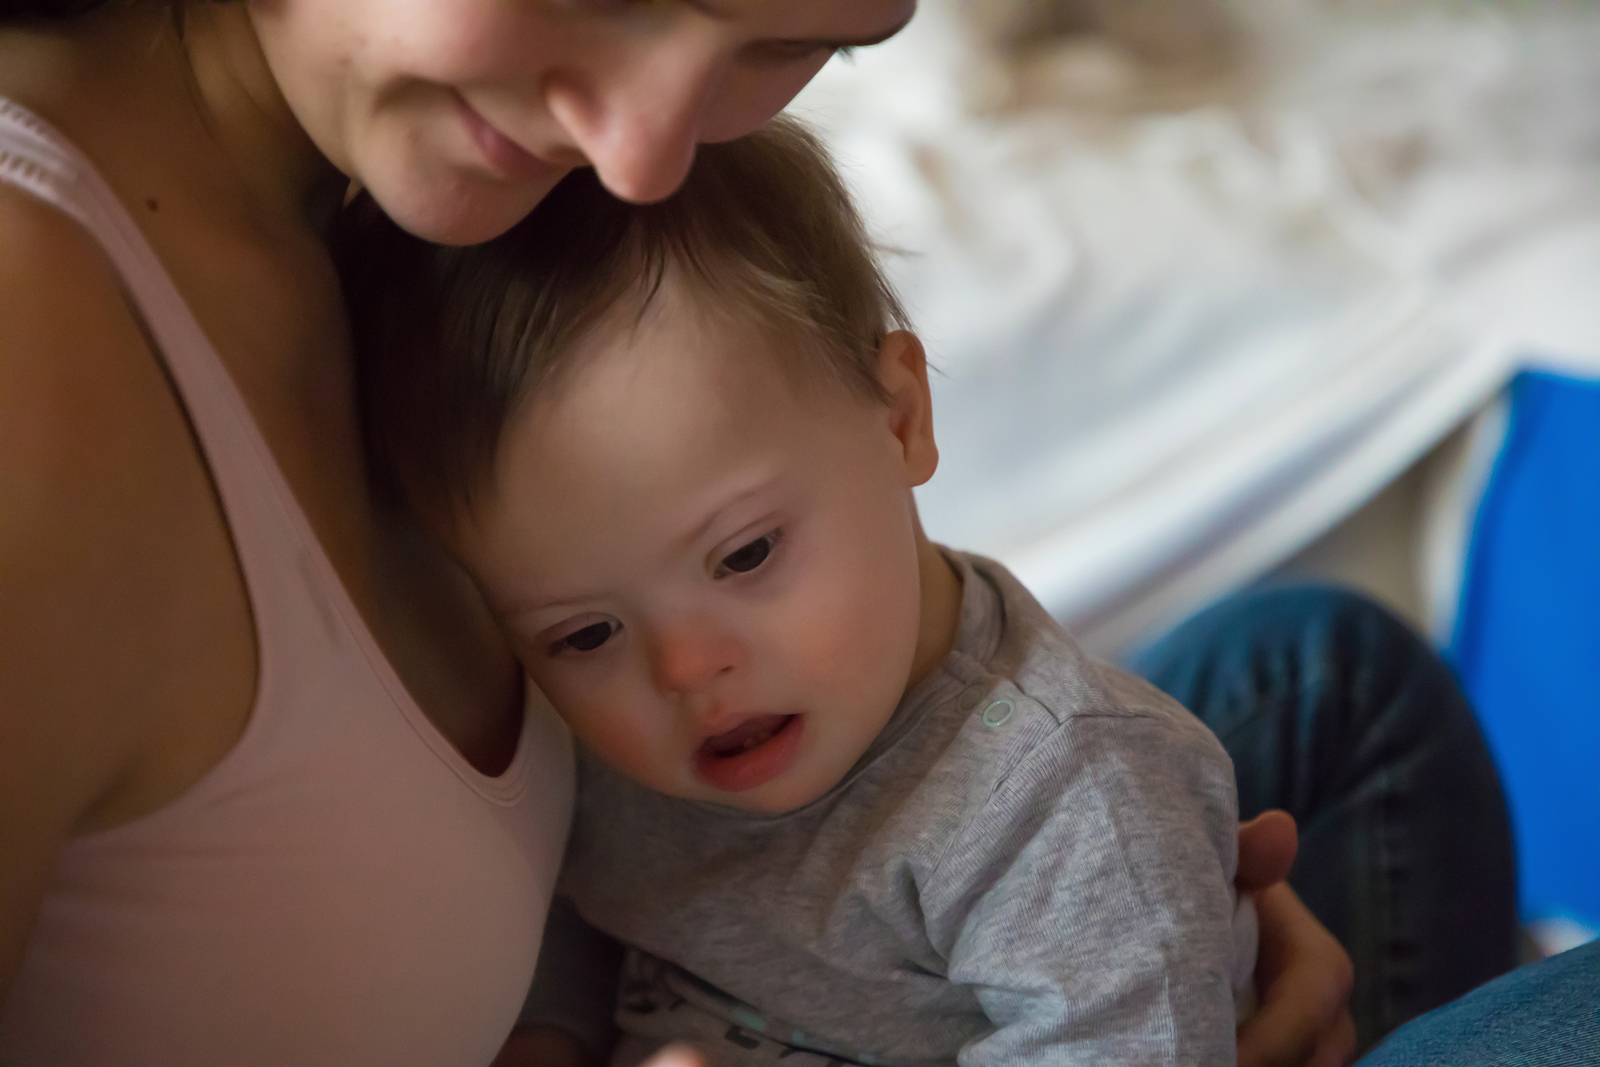 Pa. bill banning abortions for Down syndrome divides special needs  community - WHYY